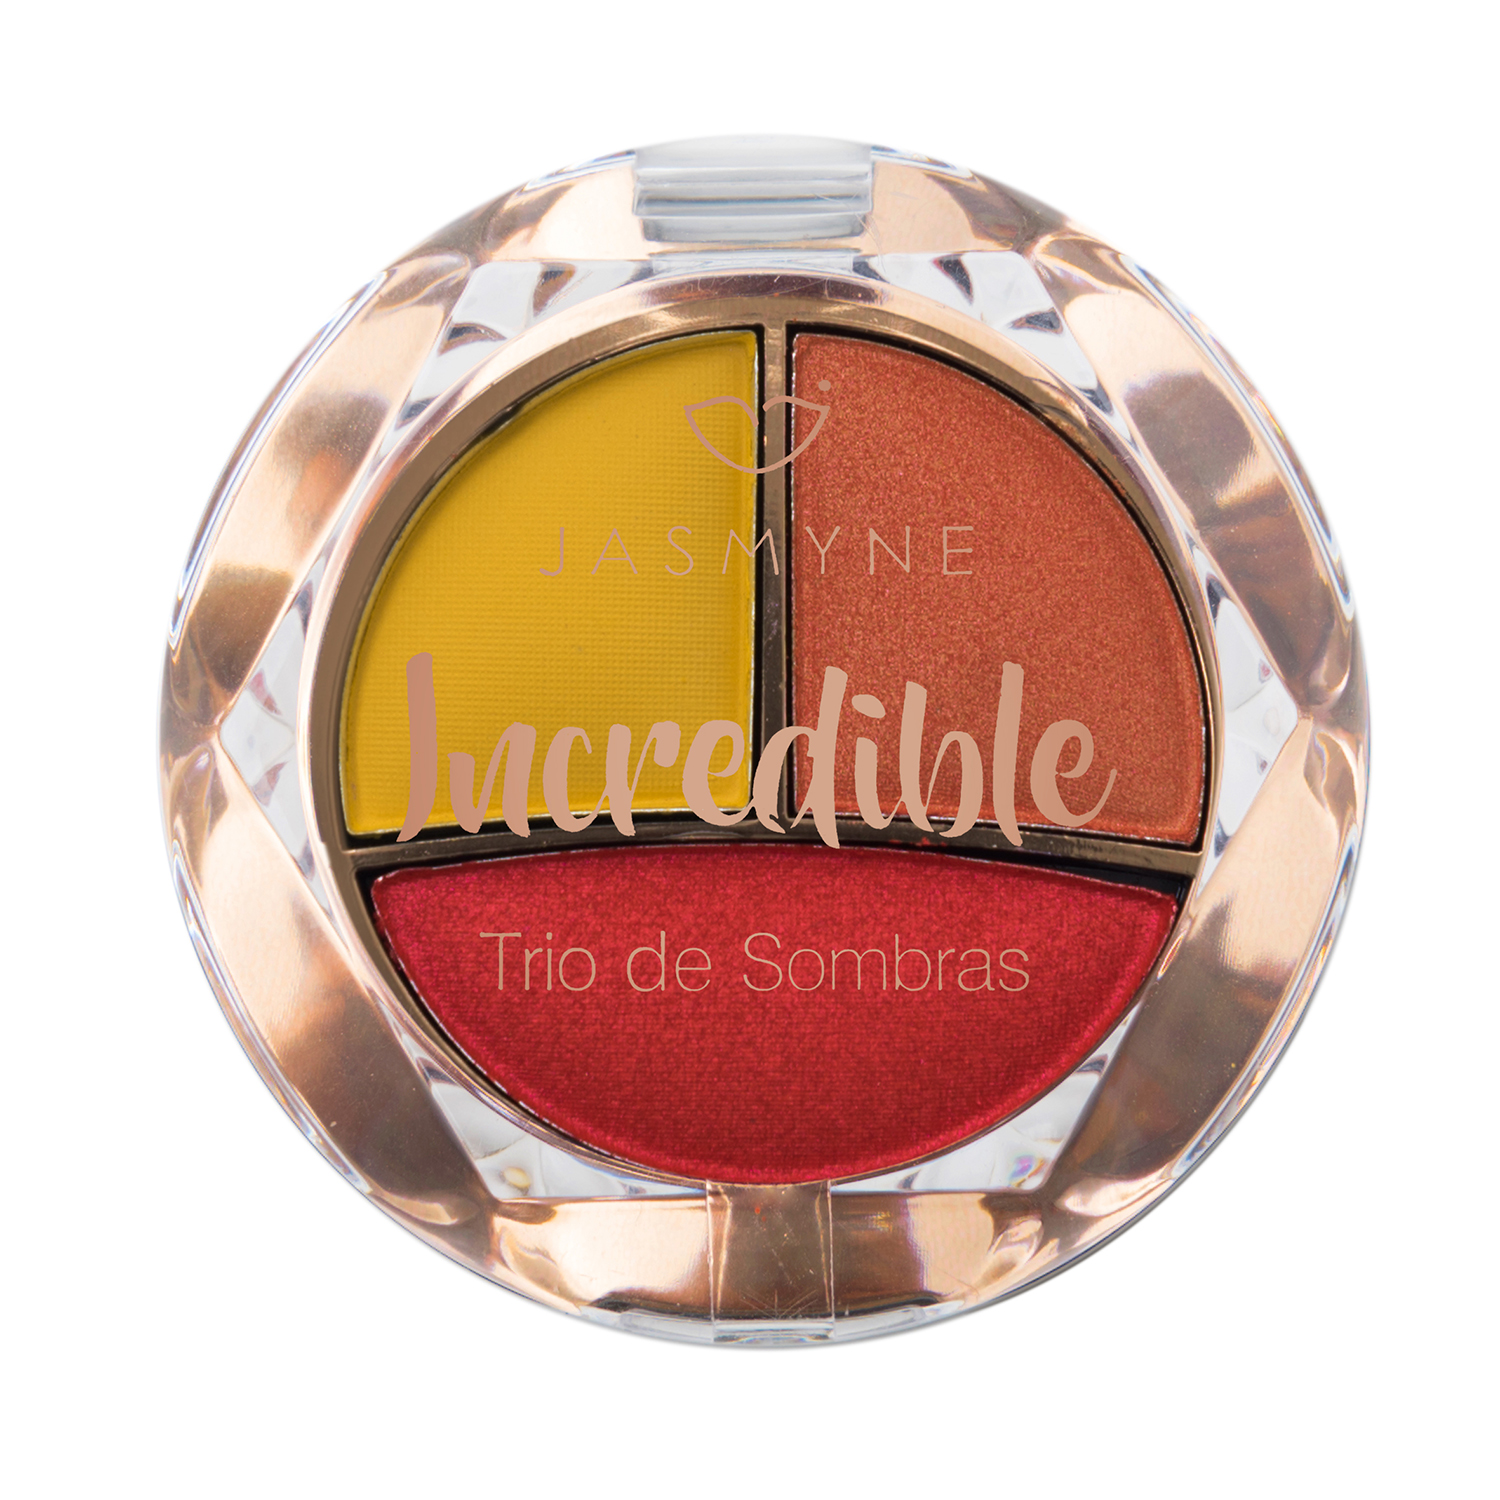 Incredible Trio de Sombras